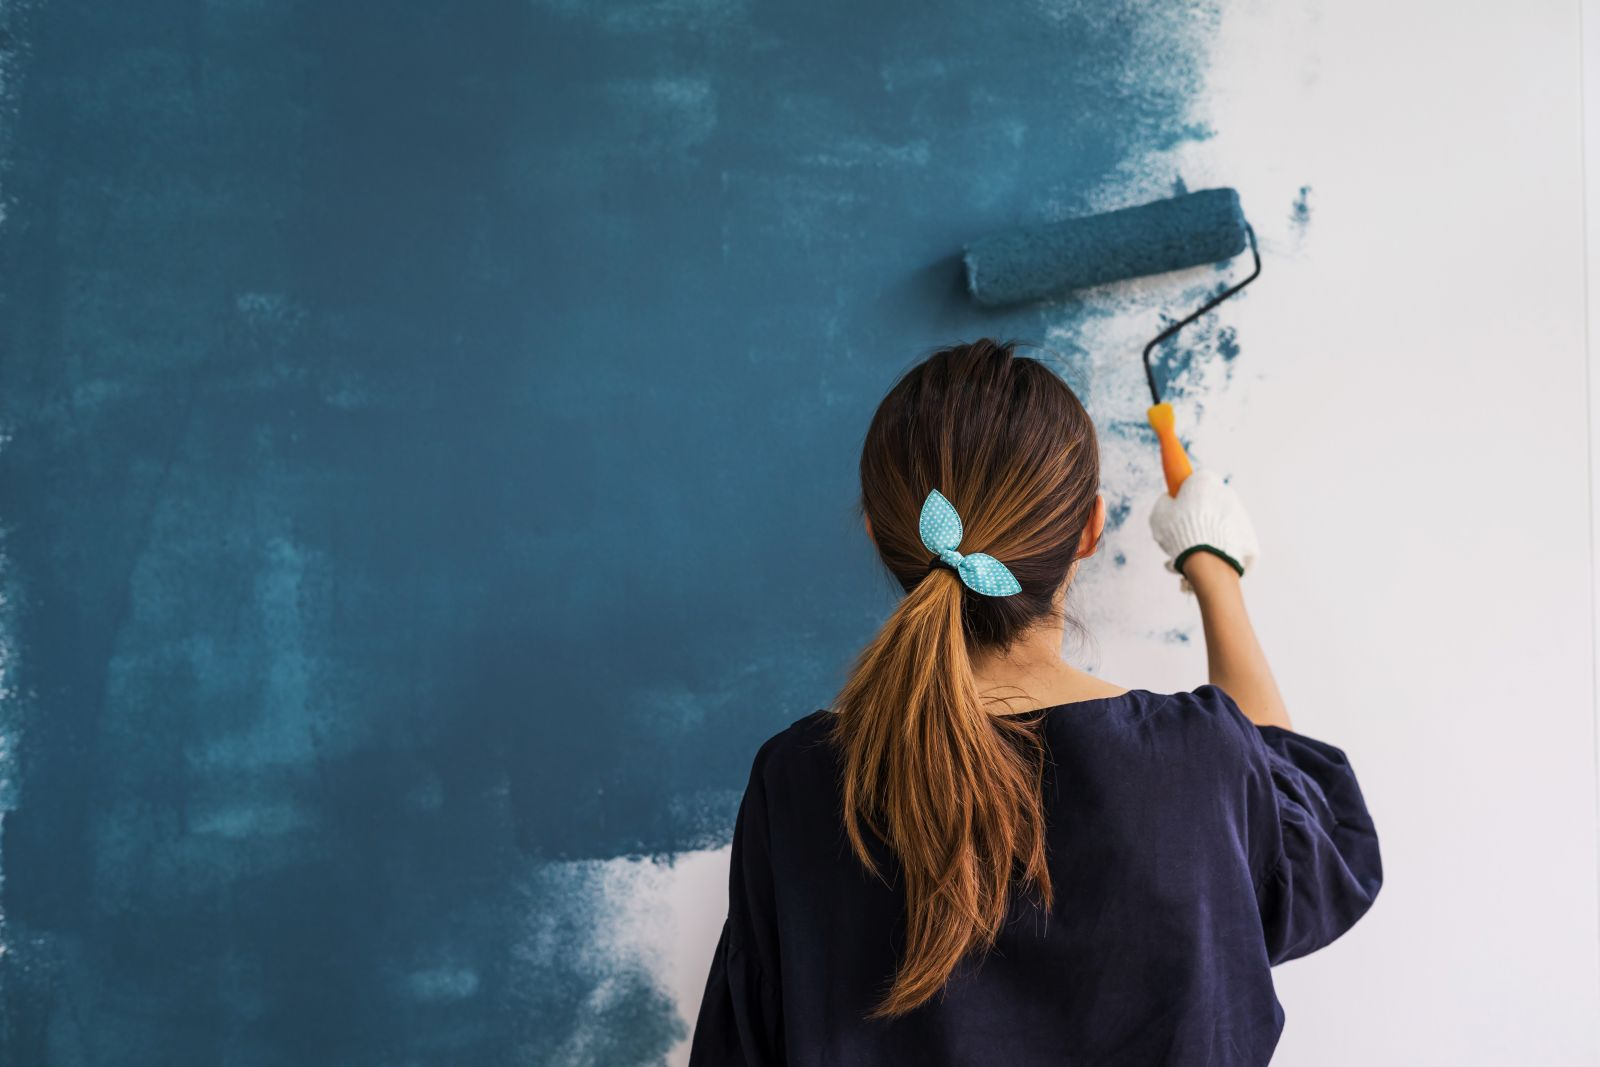 painting inside walls - home improvments